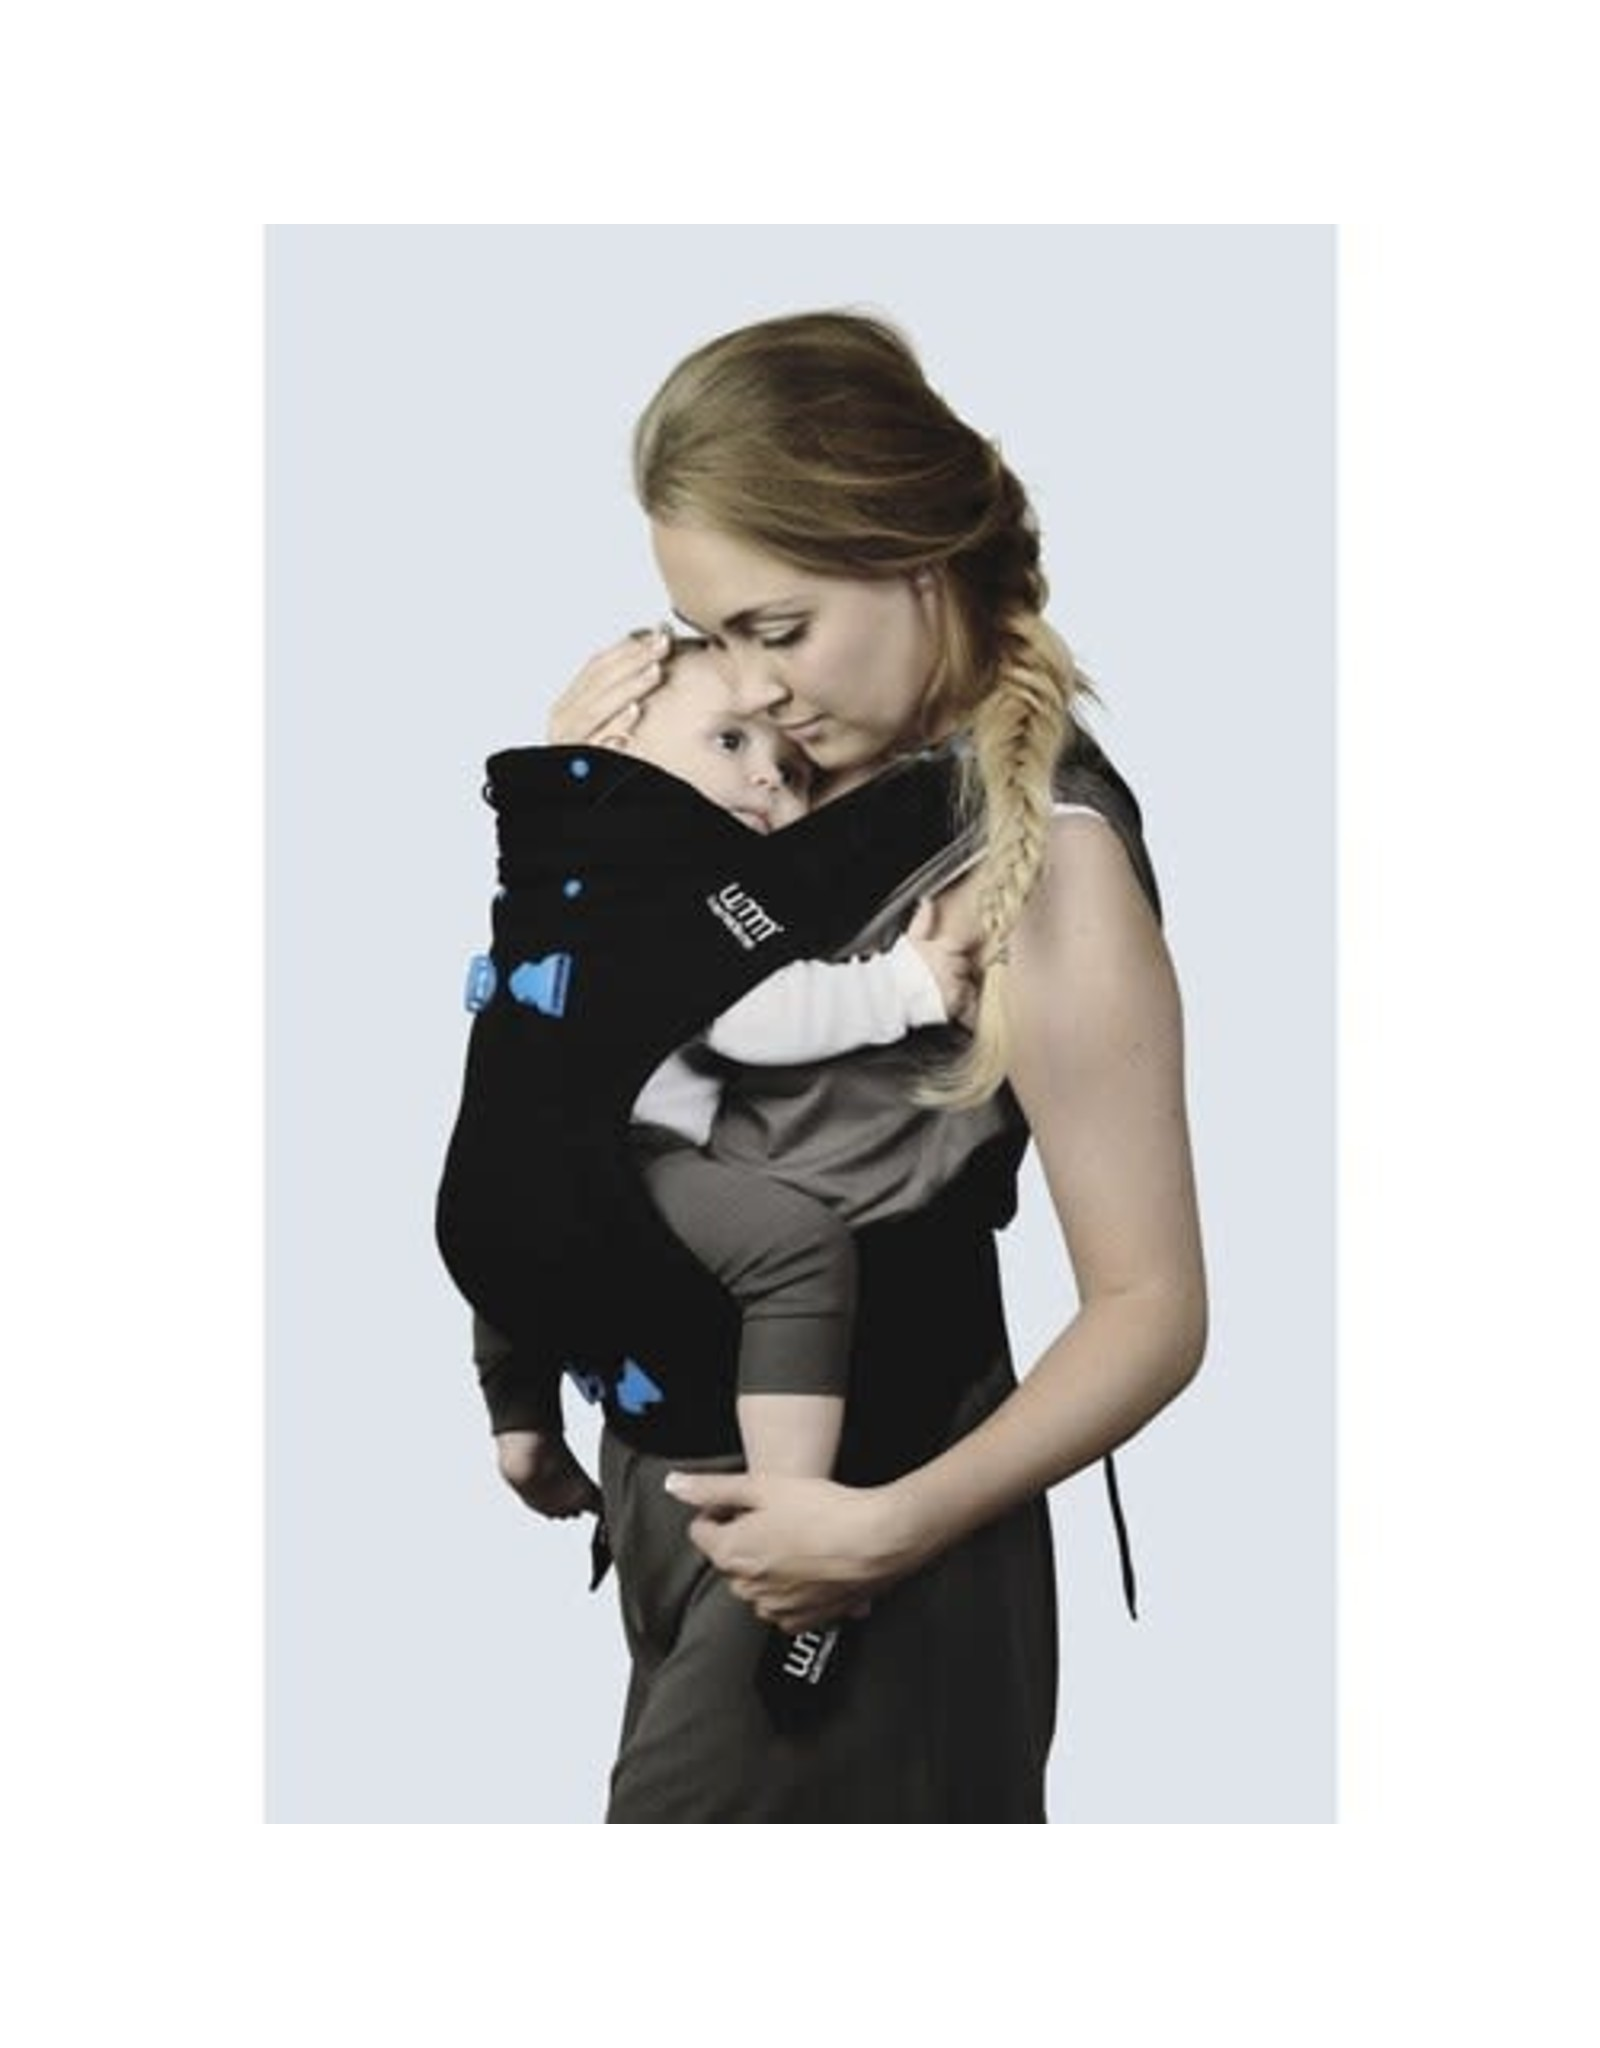 Diono 3 in 1 Baby Carrier, Imagine Deluxe, Charcoal Grey